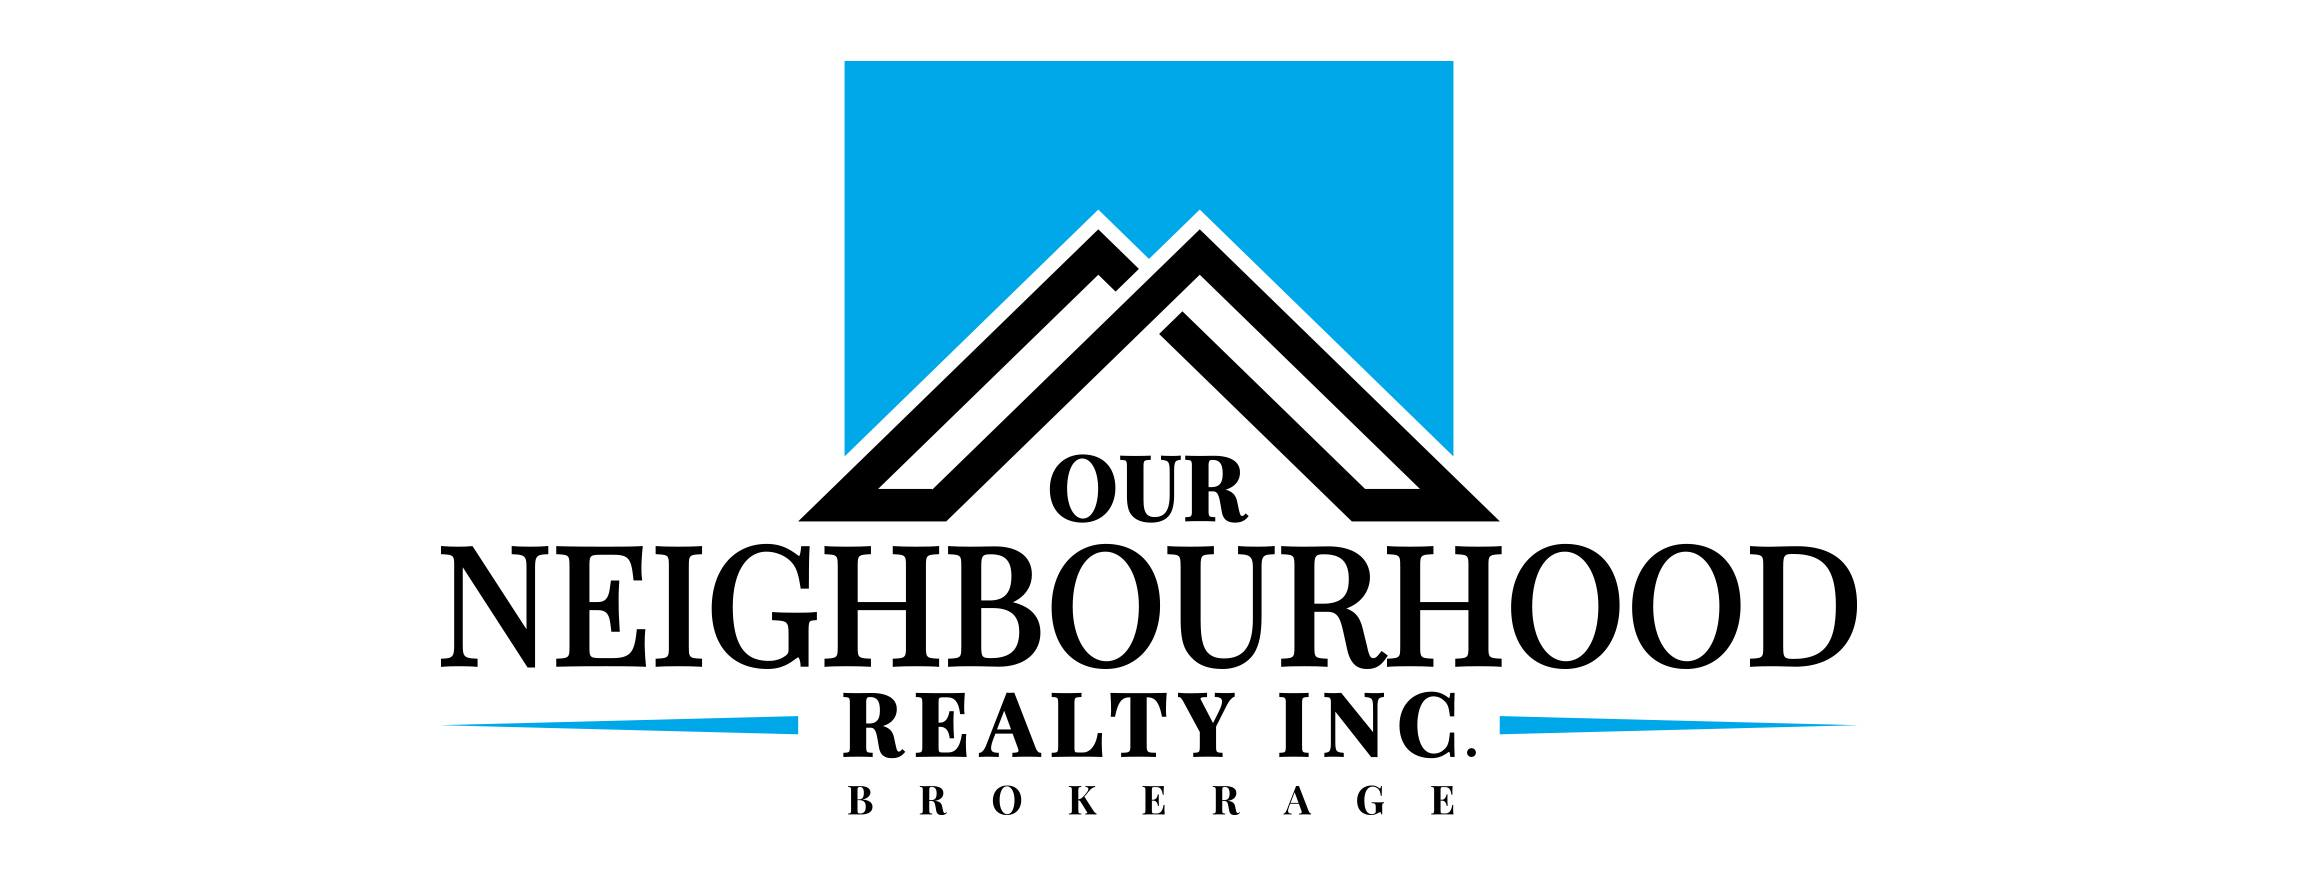 Searching for listings in Scugog